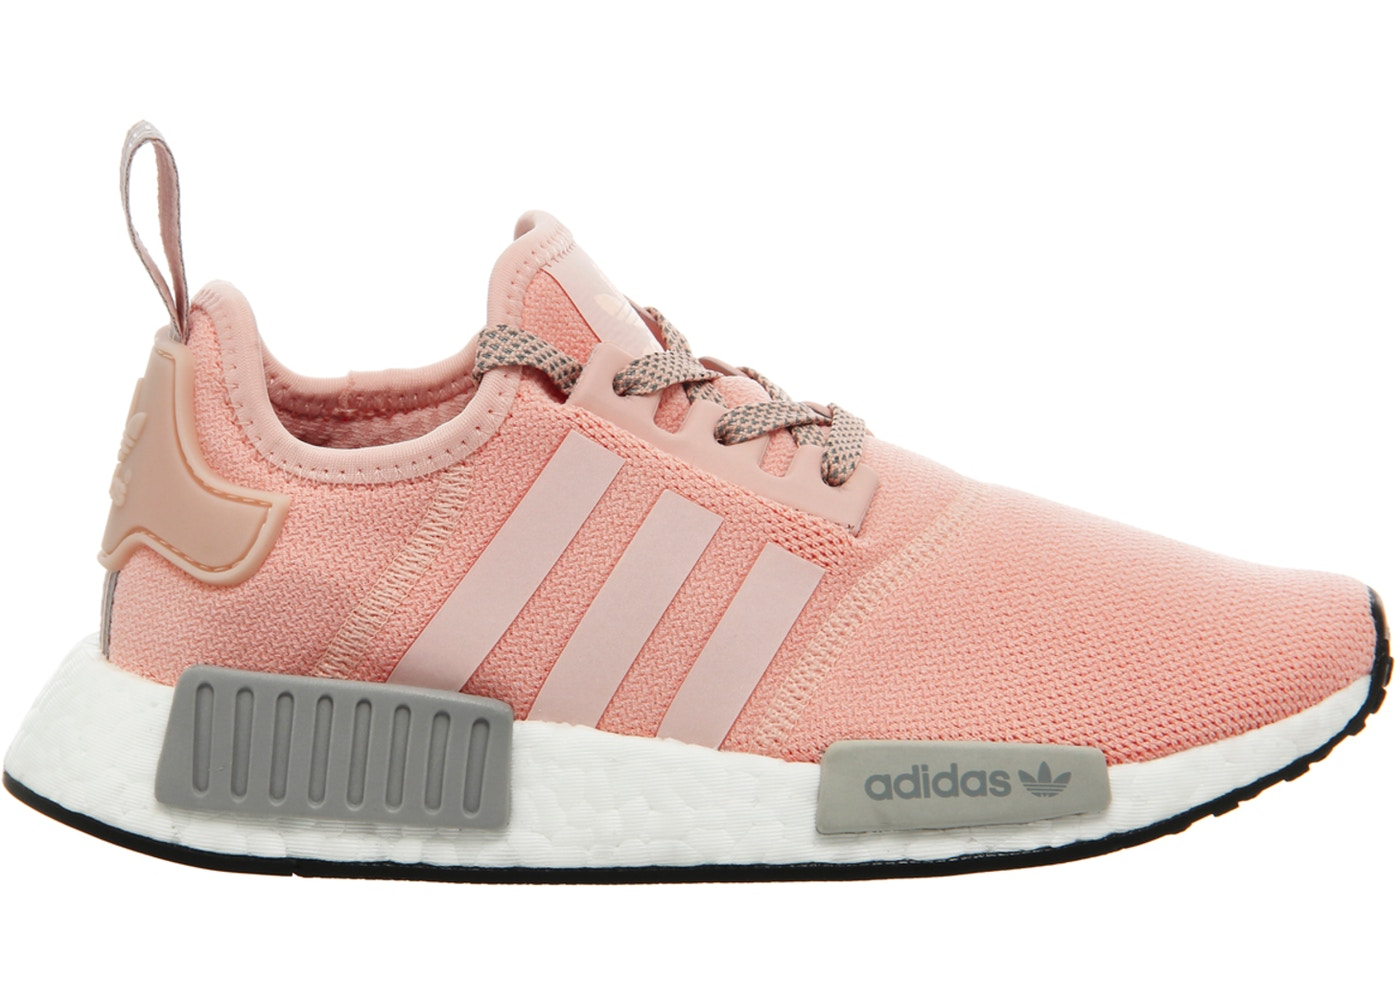 93bed3ea5 adidas NMD R1 Vapour Pink Light Onix (W) - BY3059